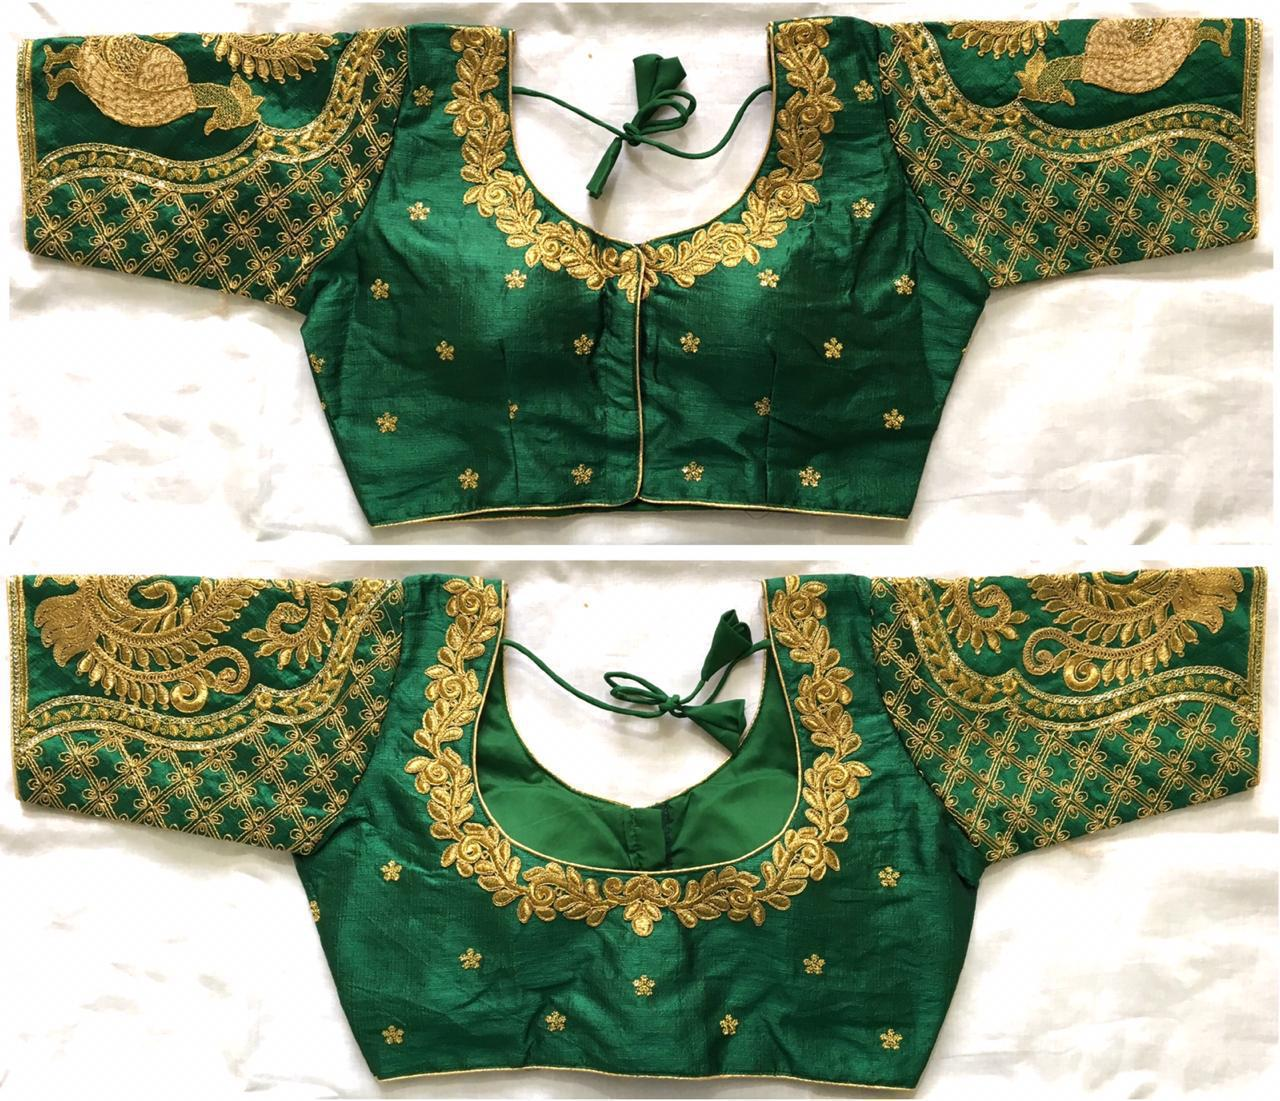 Comely Dark Green Fentam Silk With Ready Work Ready Made Blouse